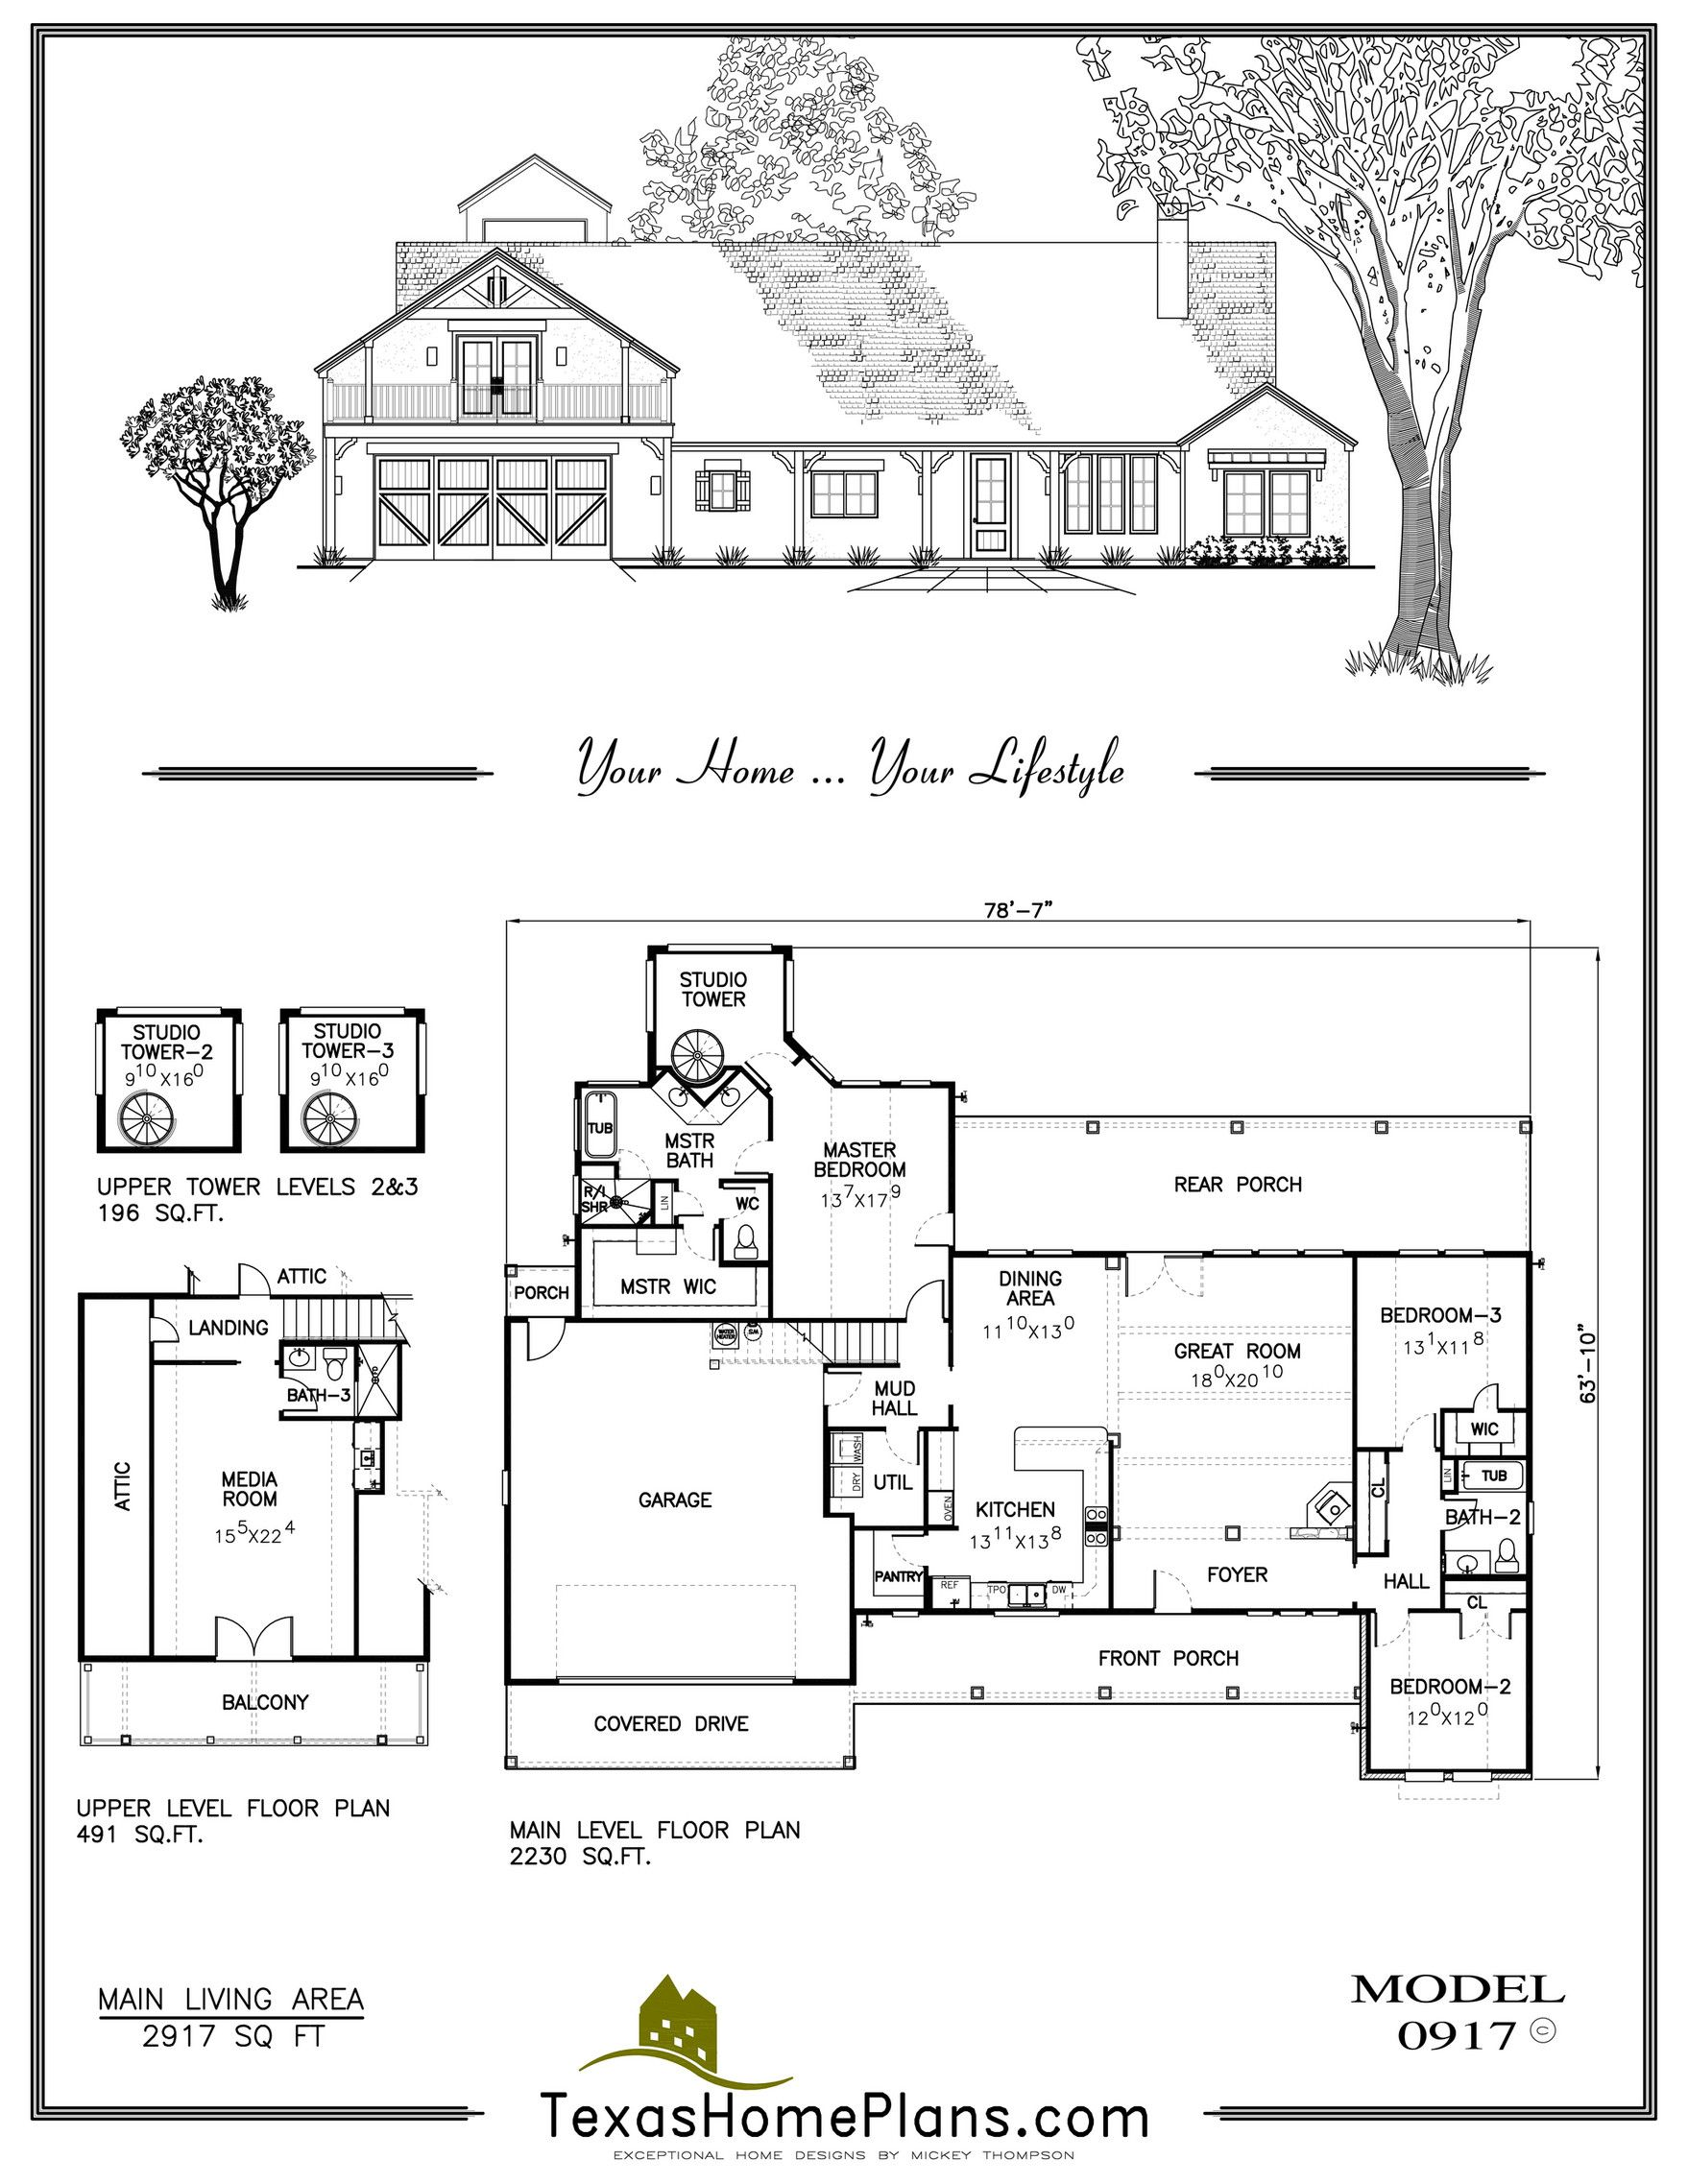 3br 3b 2500 3000 0917 Porch And Balcony Three Bedroom House Plan Bedroom House Plans